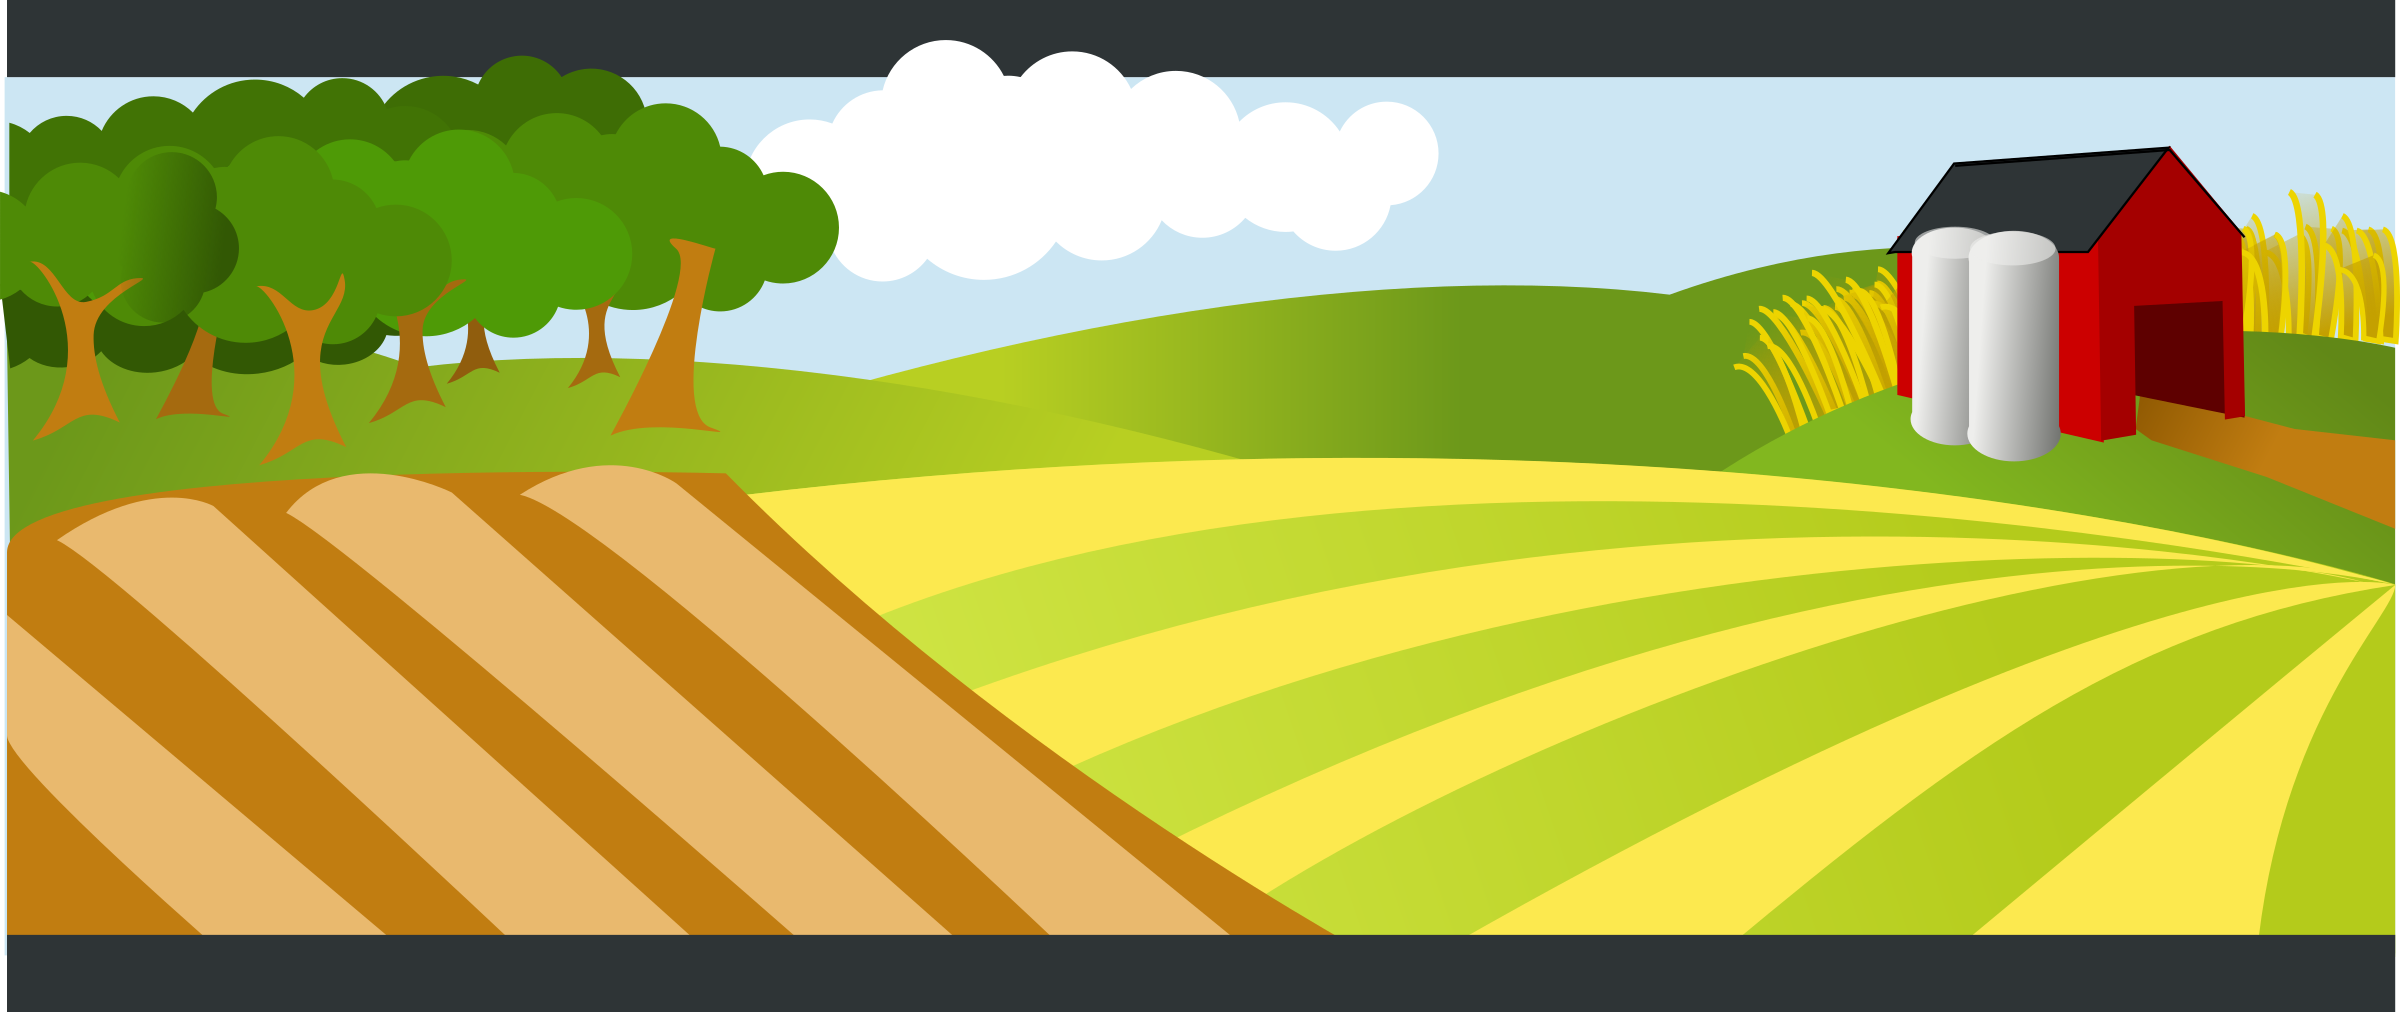 Land clipart big hill. Landscape with red farm